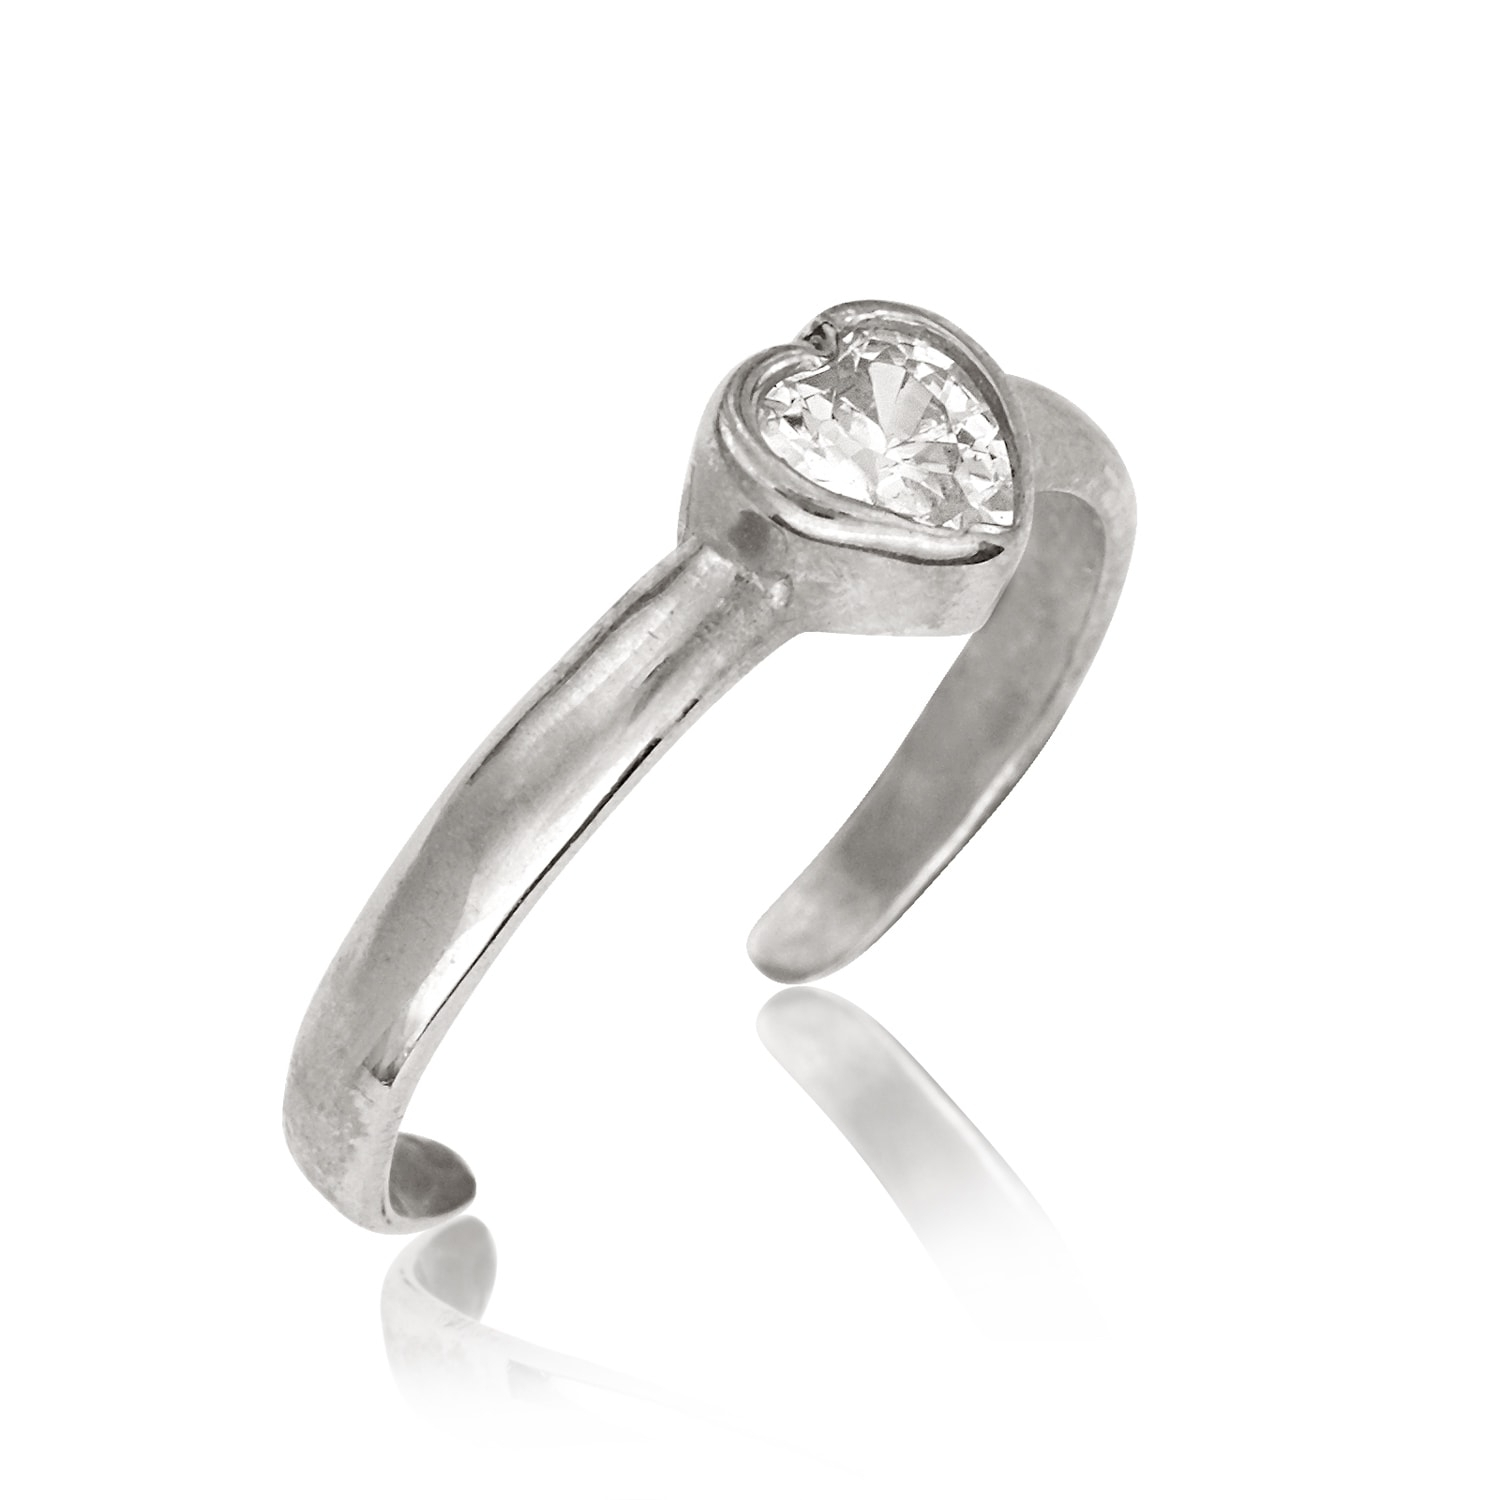 14K Yellow Or White Gold Adjustable Heart Shaped Cubic Zirconia Pertaining To 2018 Toe Rings With Cubic Zirconia (View 1 of 15)